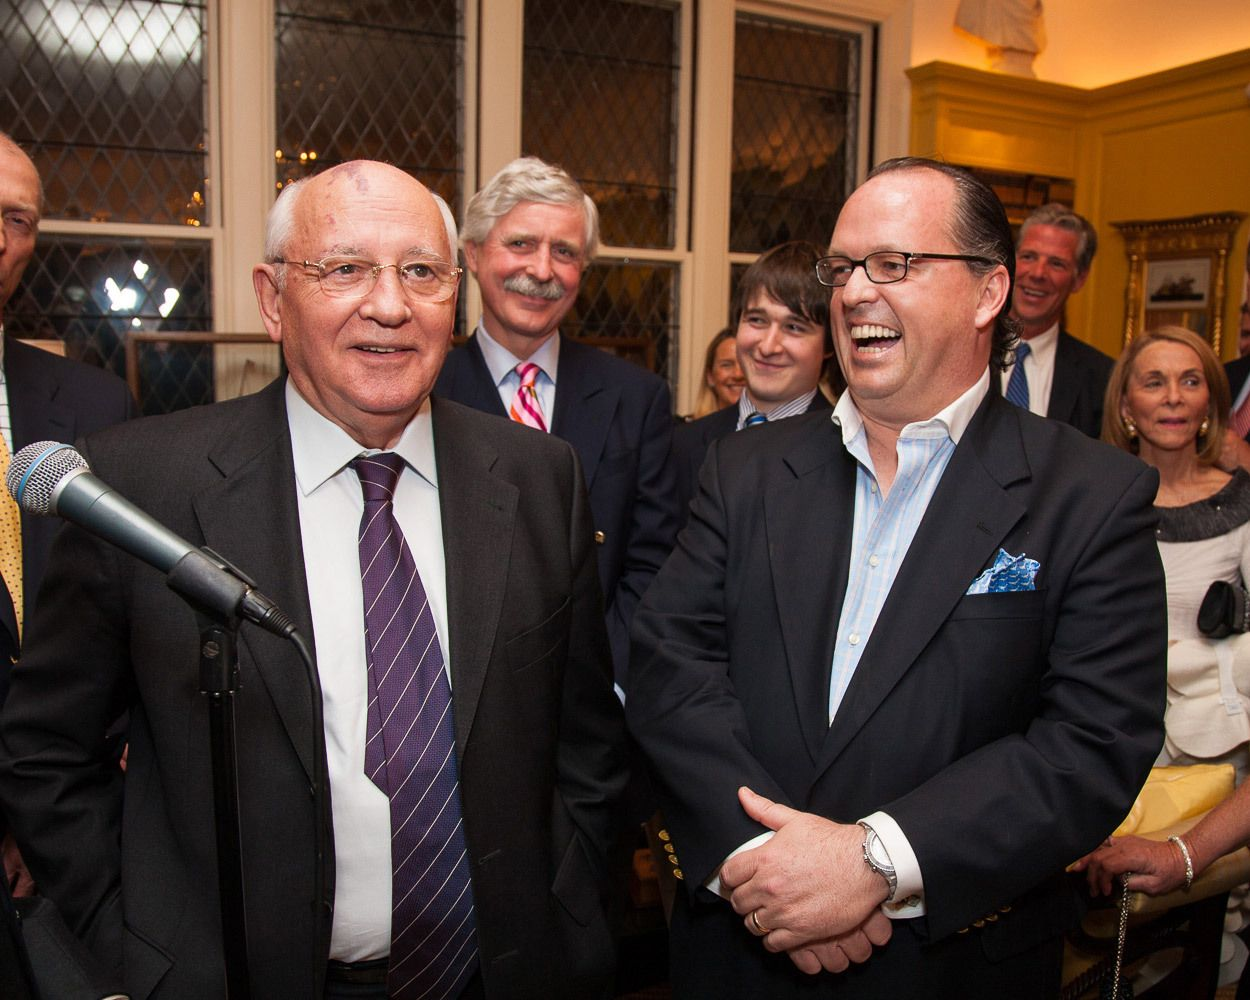 Mikhail Gorbachev, former President of the Soviet Union, is a guest speaker at Carnegie Abbey.